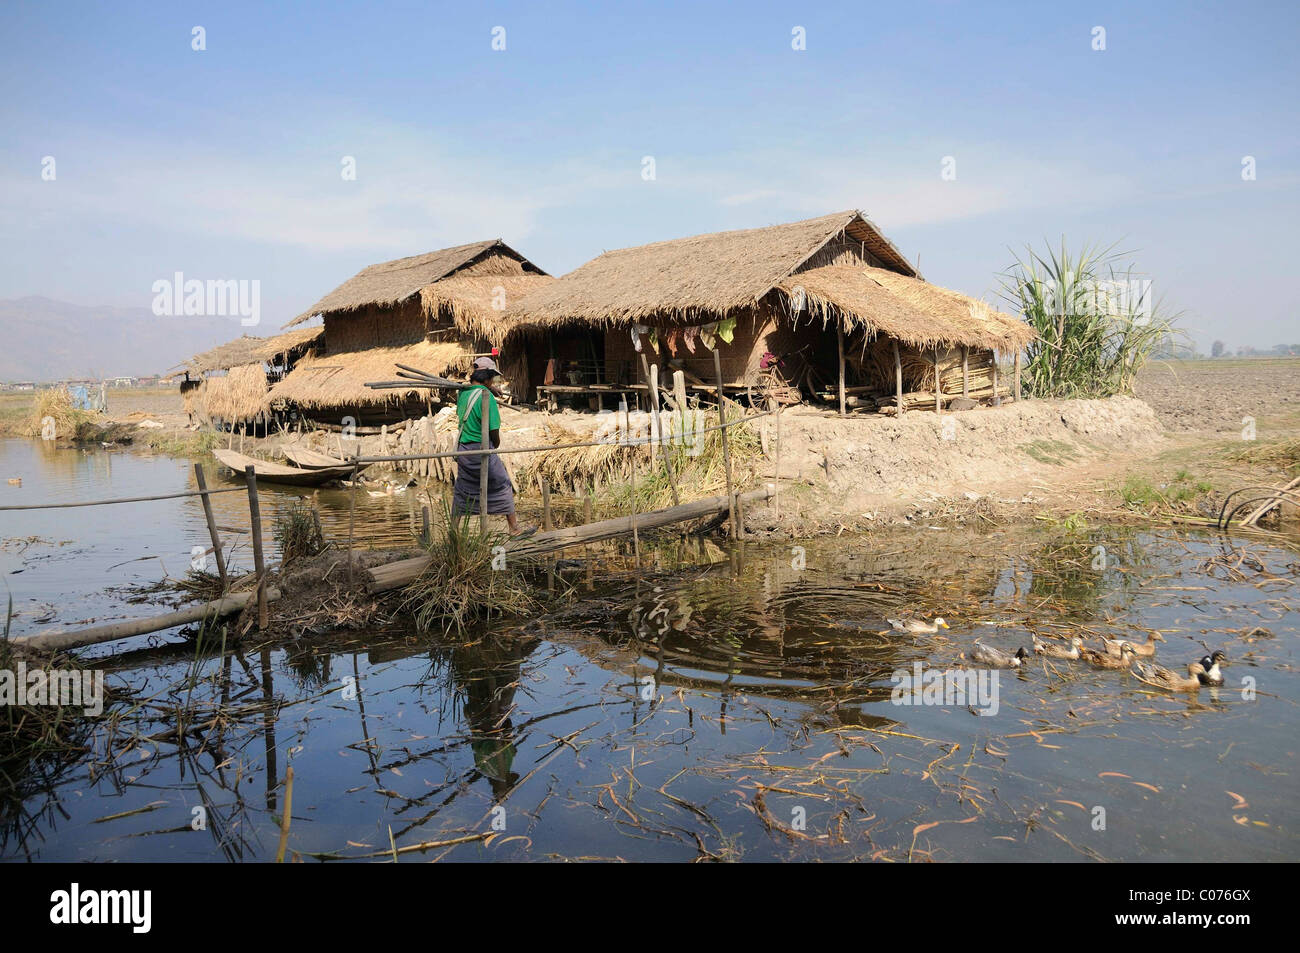 Intha homestead on a canal near Inle Lake, Nyaung Shwe, Shan State, Myanmar, Burma, Southeast Asia - Stock Image